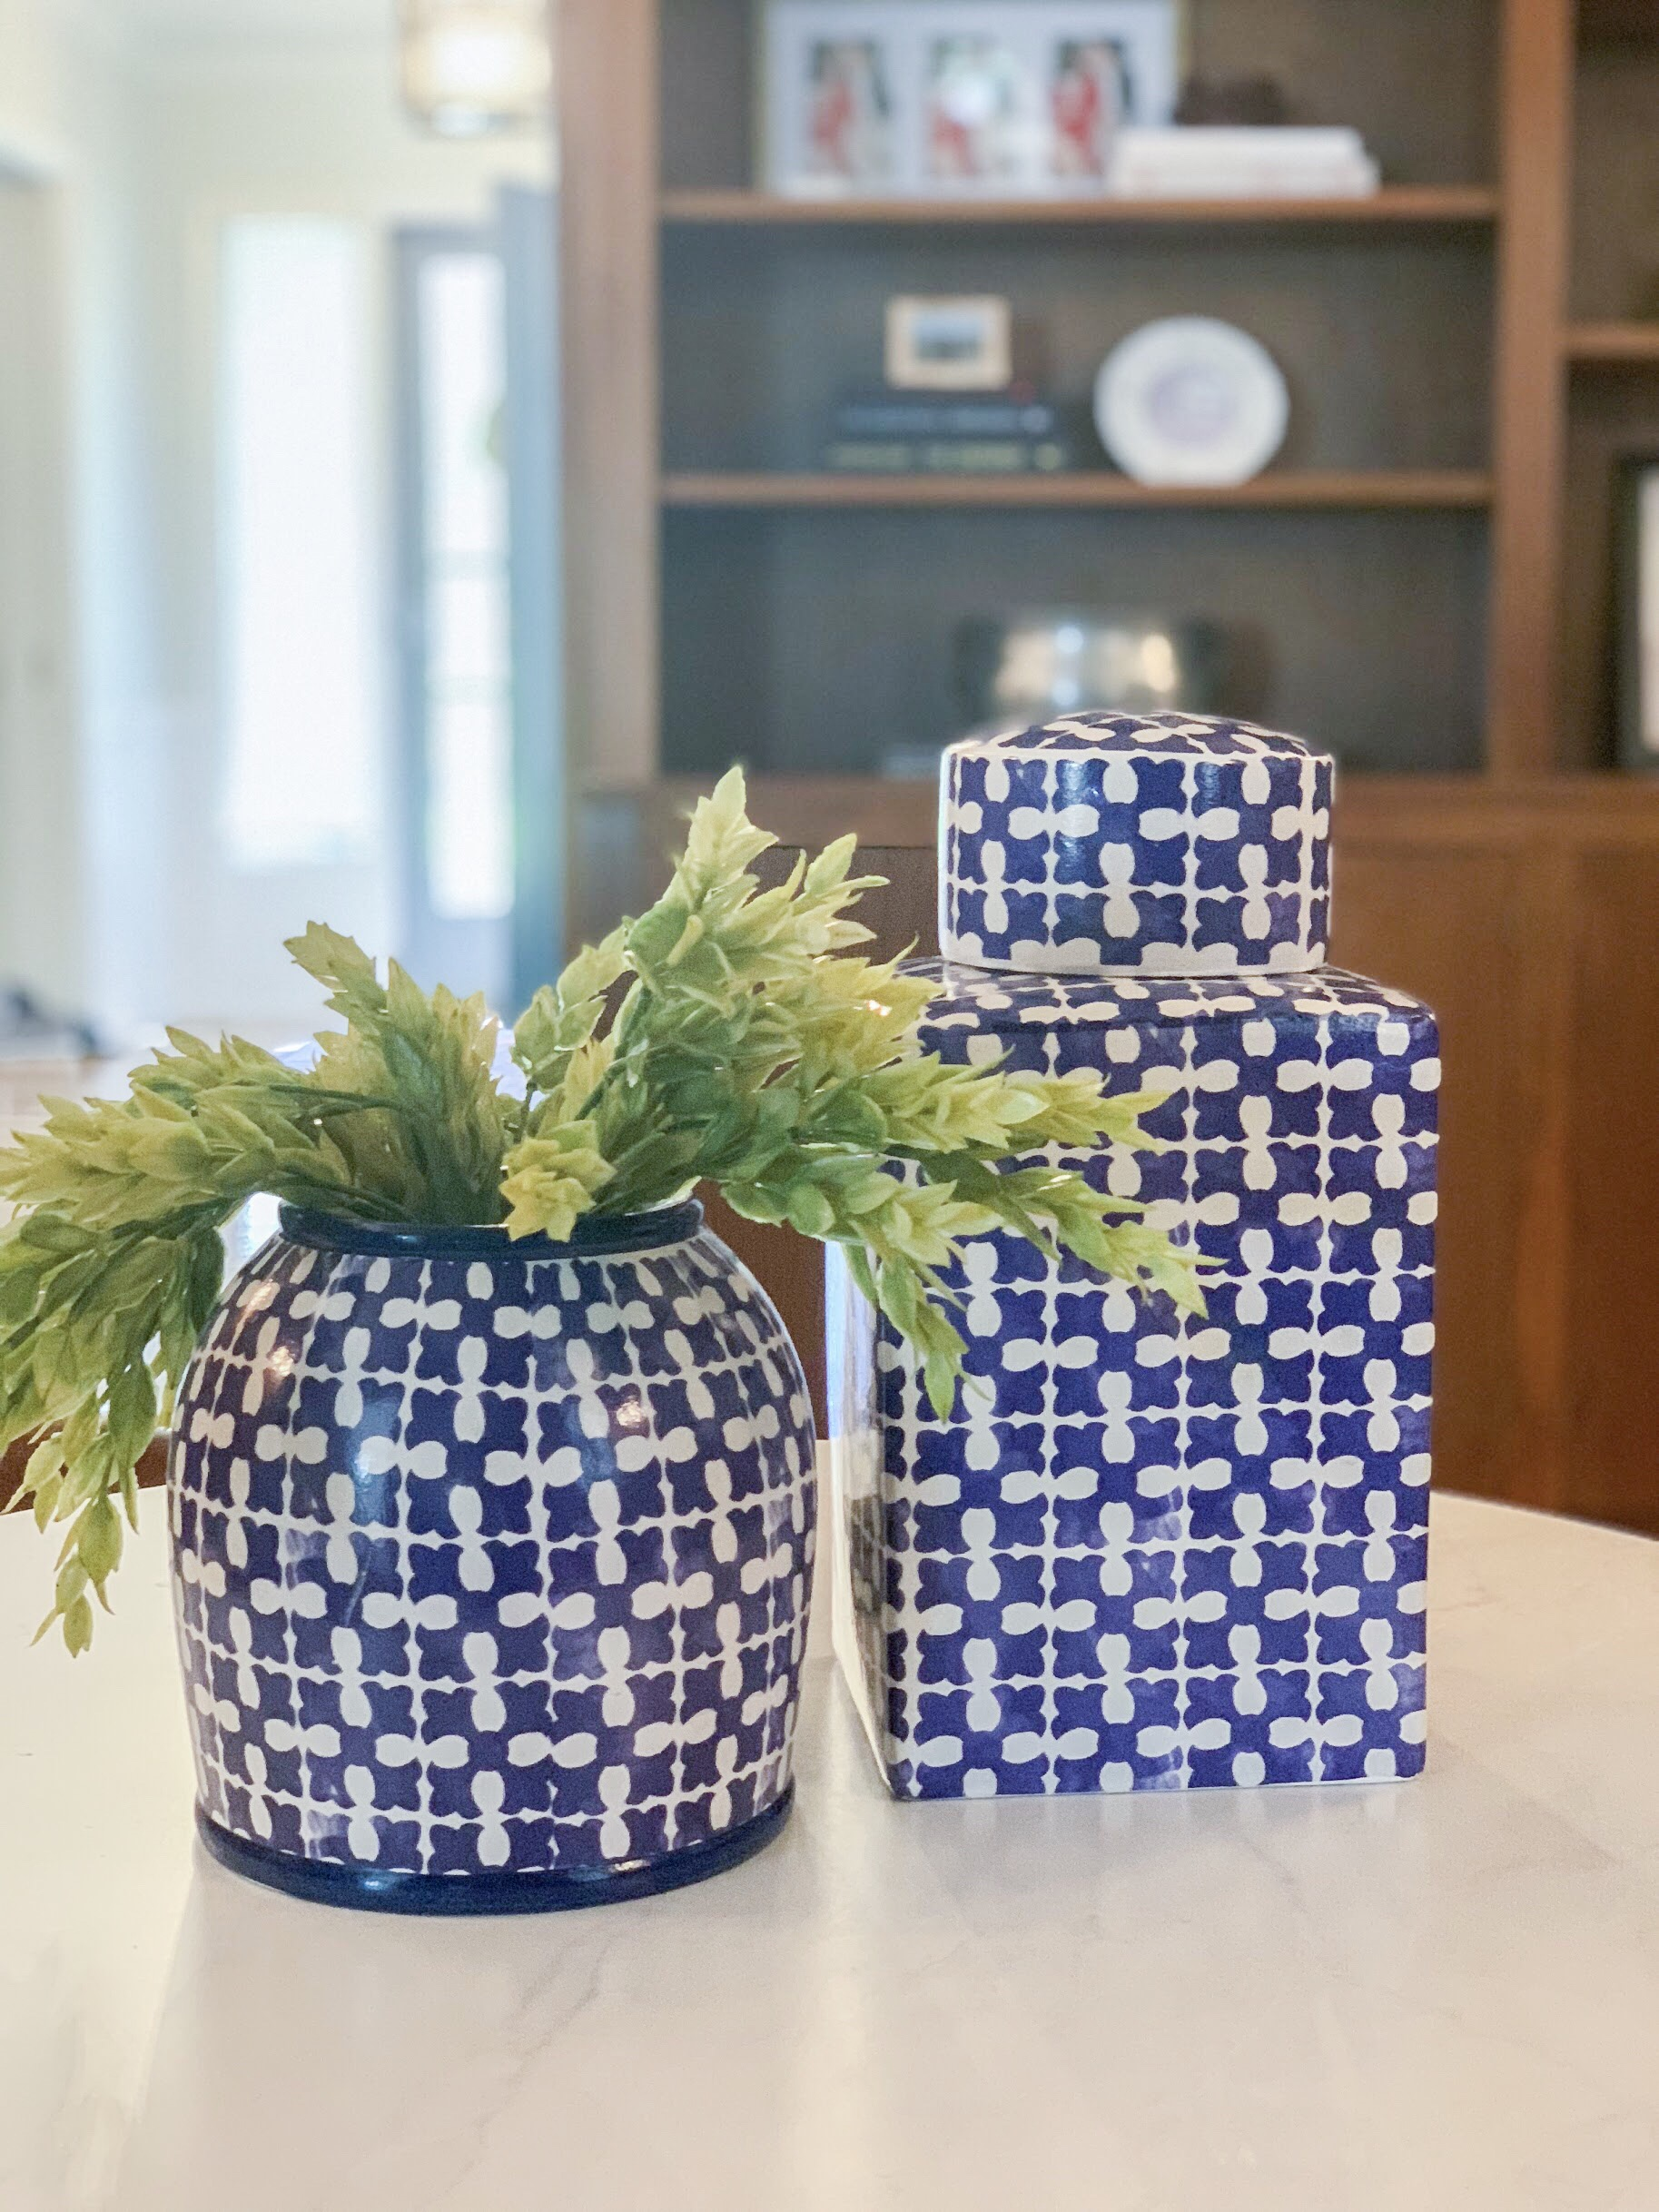 greenery in blue and white pottery